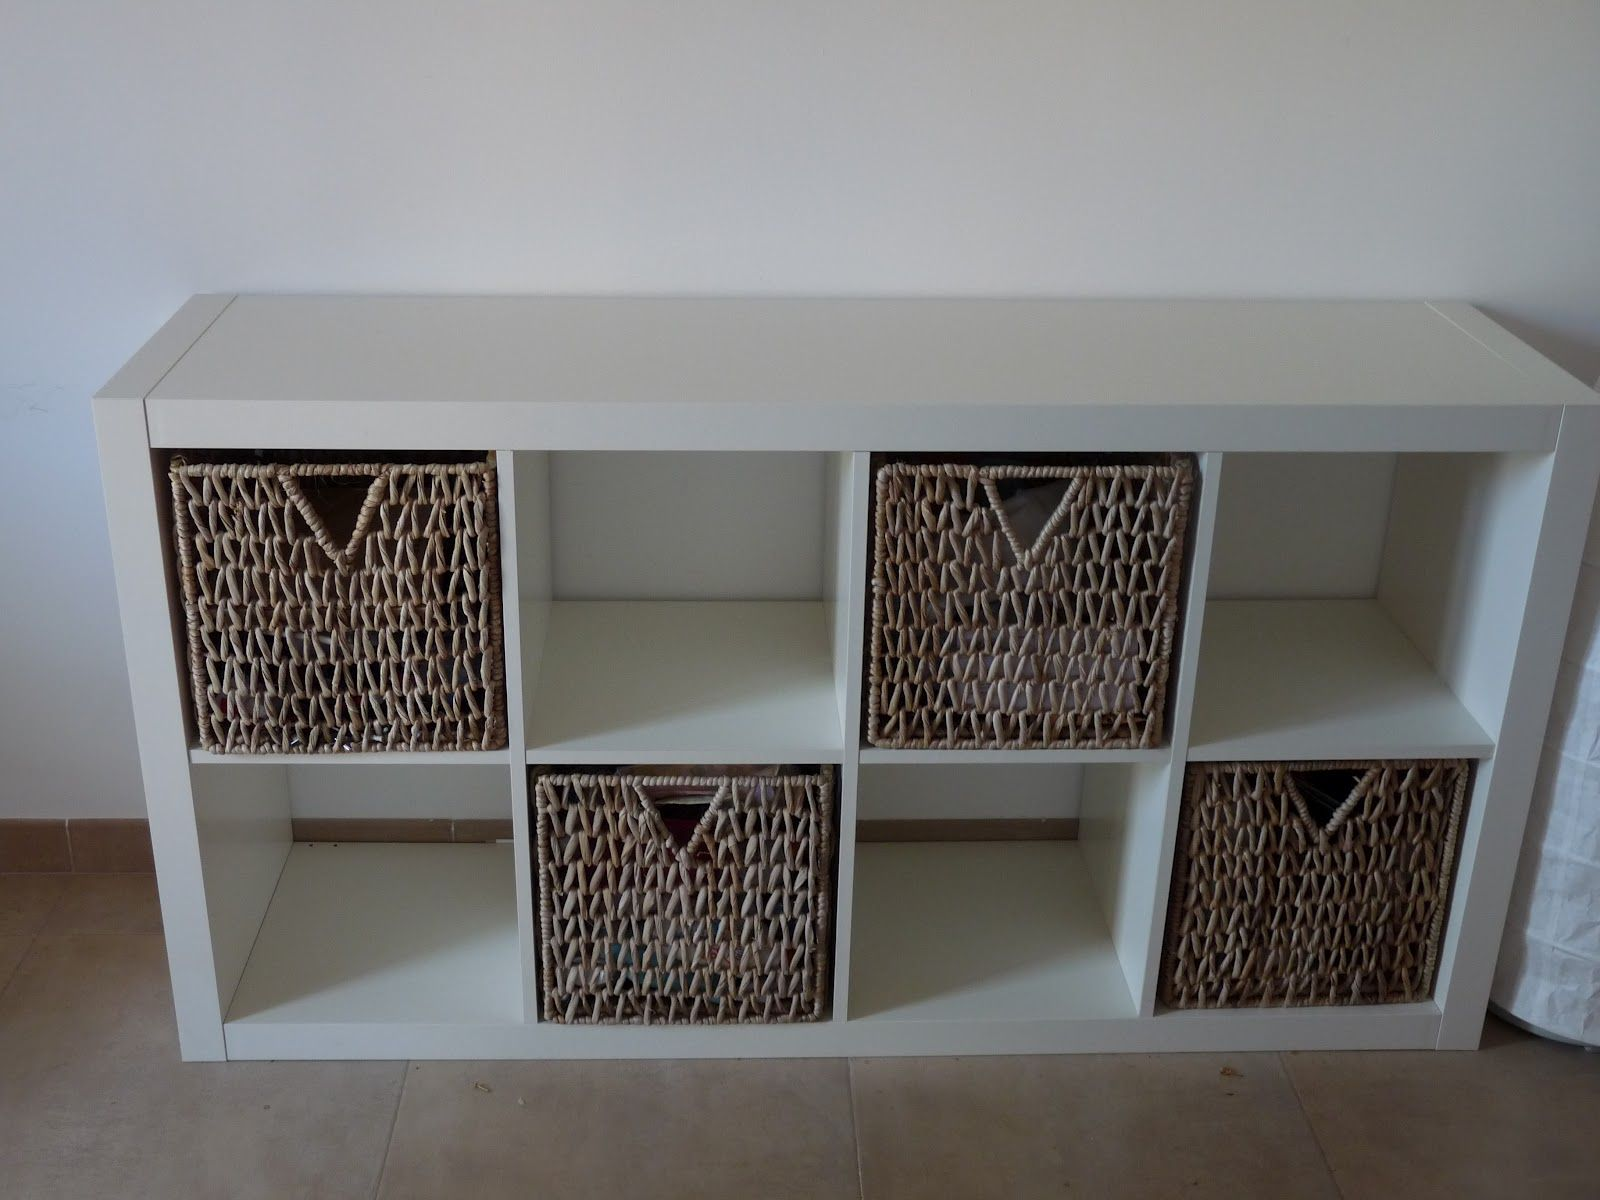 Several Extraordinary Uses For Storage Baskets Storage Furniture